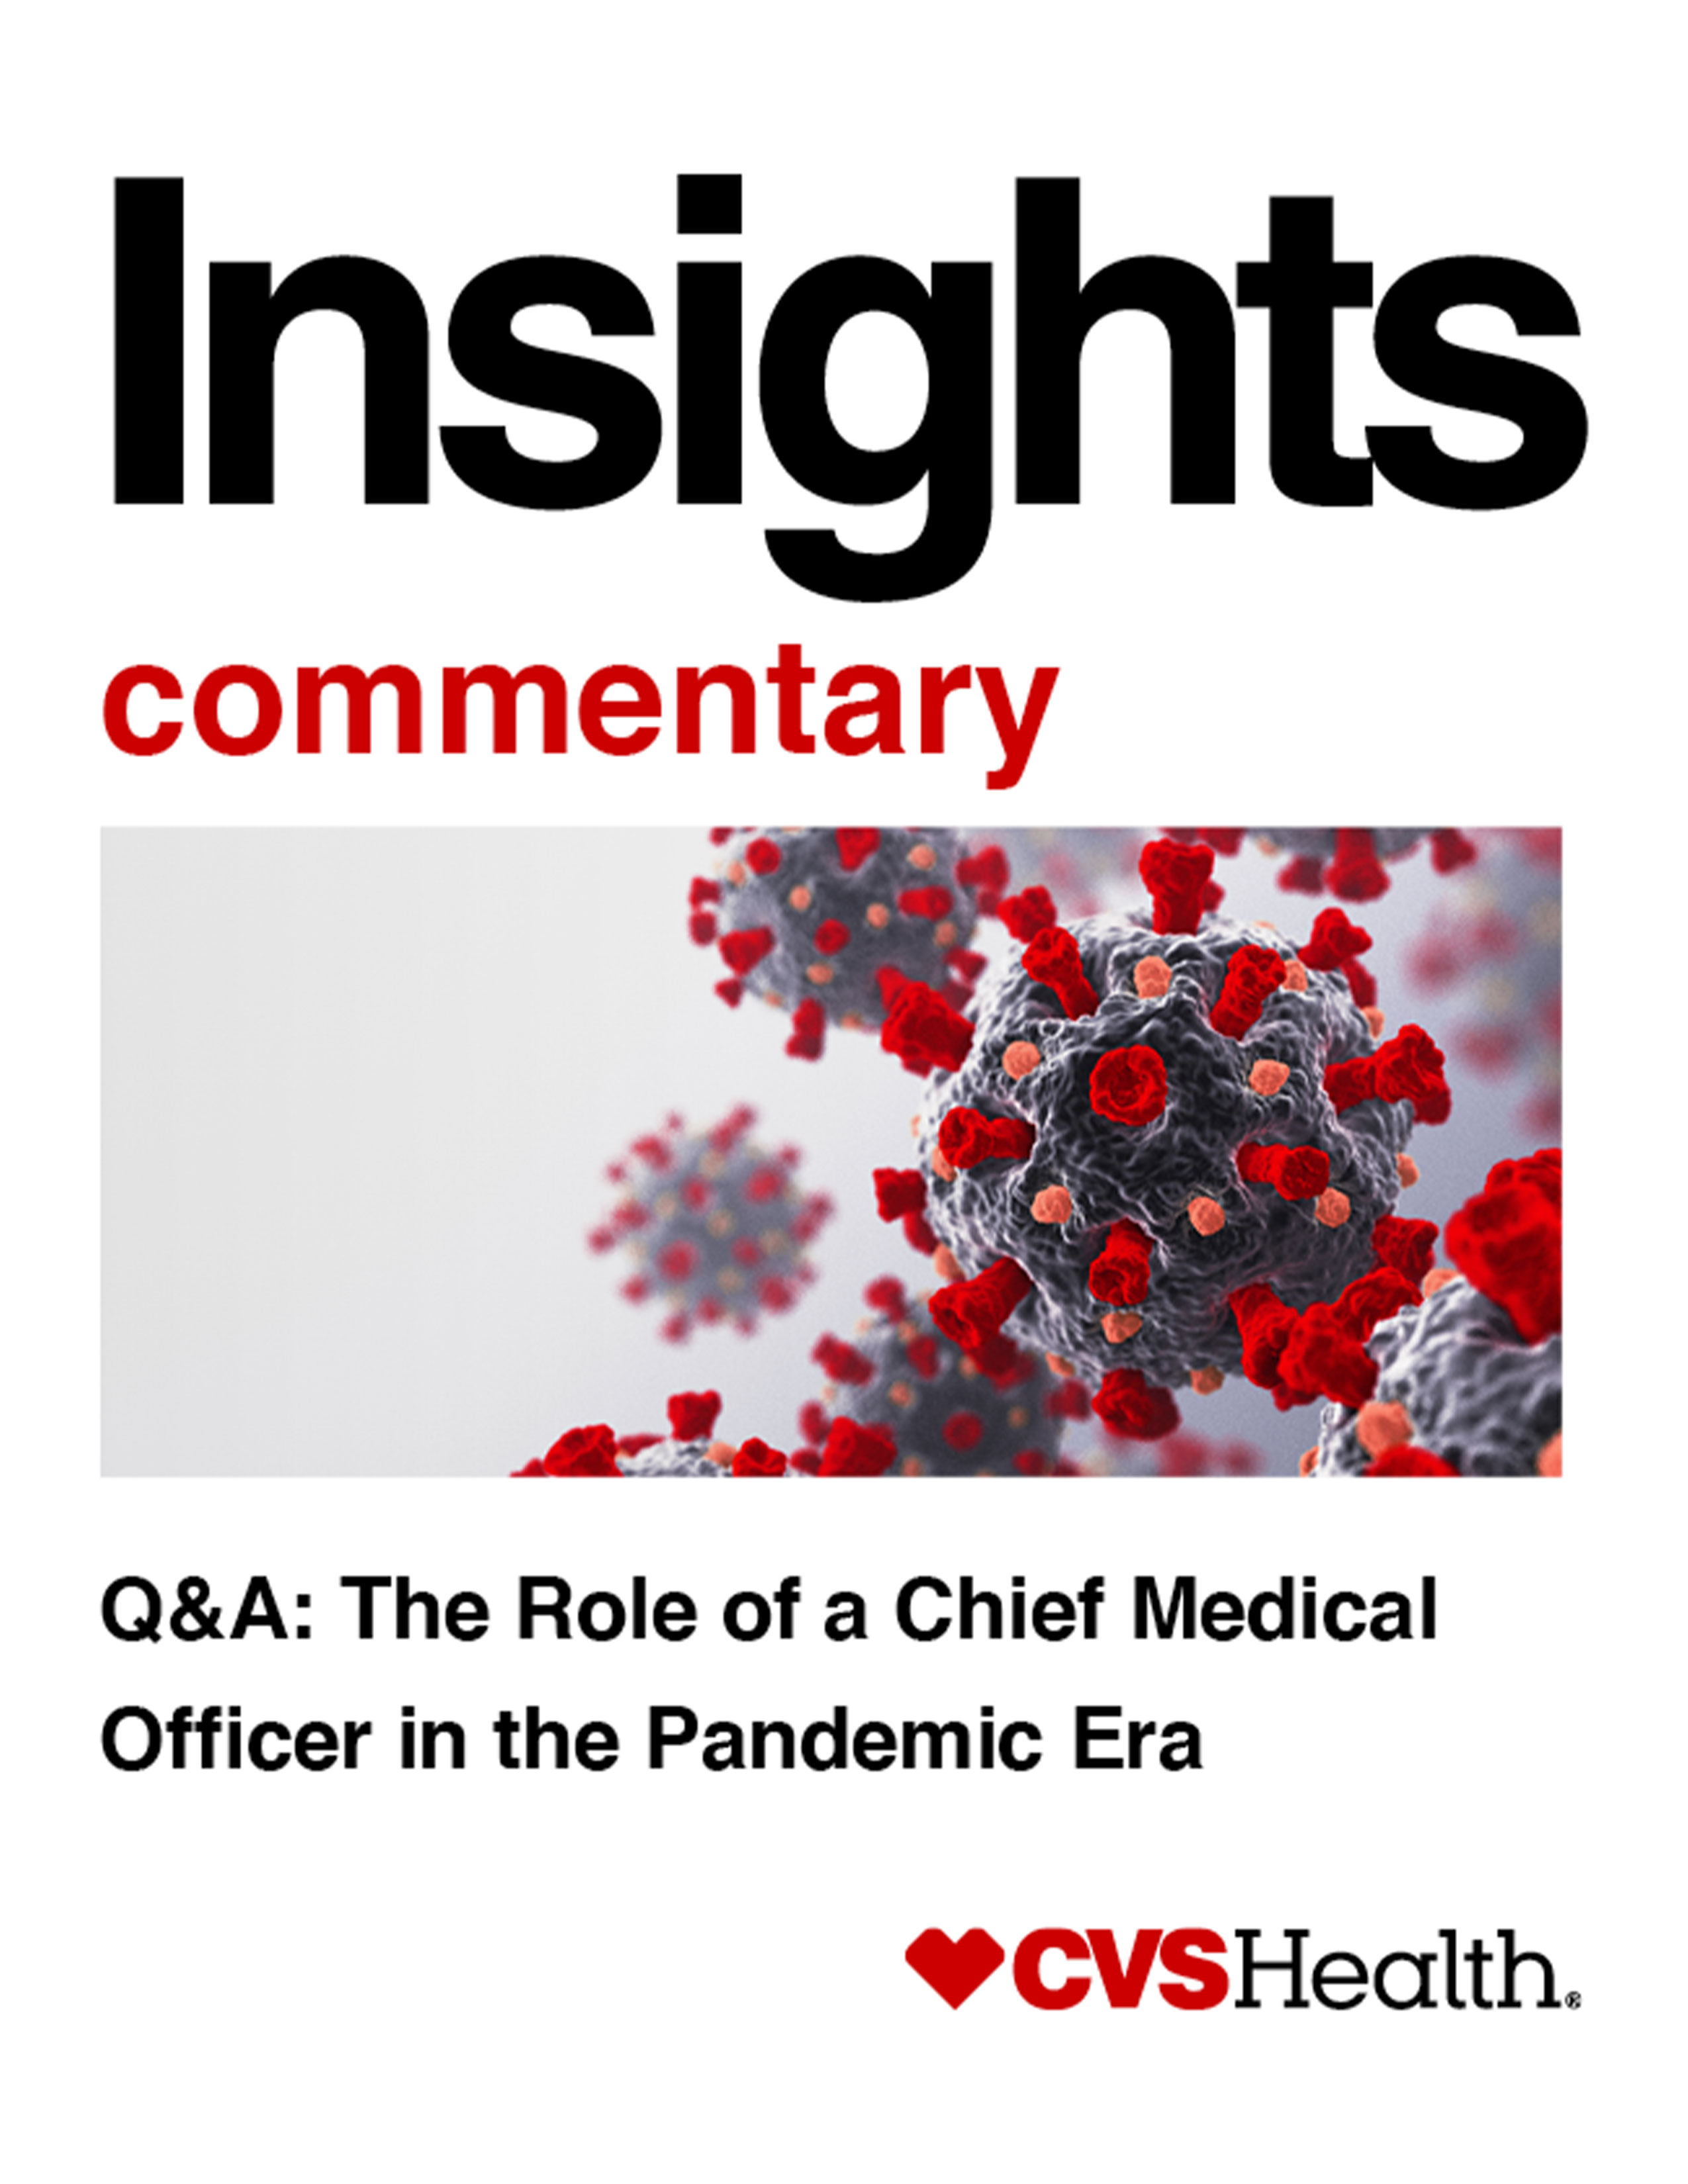 Q&A: The Role of a Chief Medical Officer in the Pandemic Era